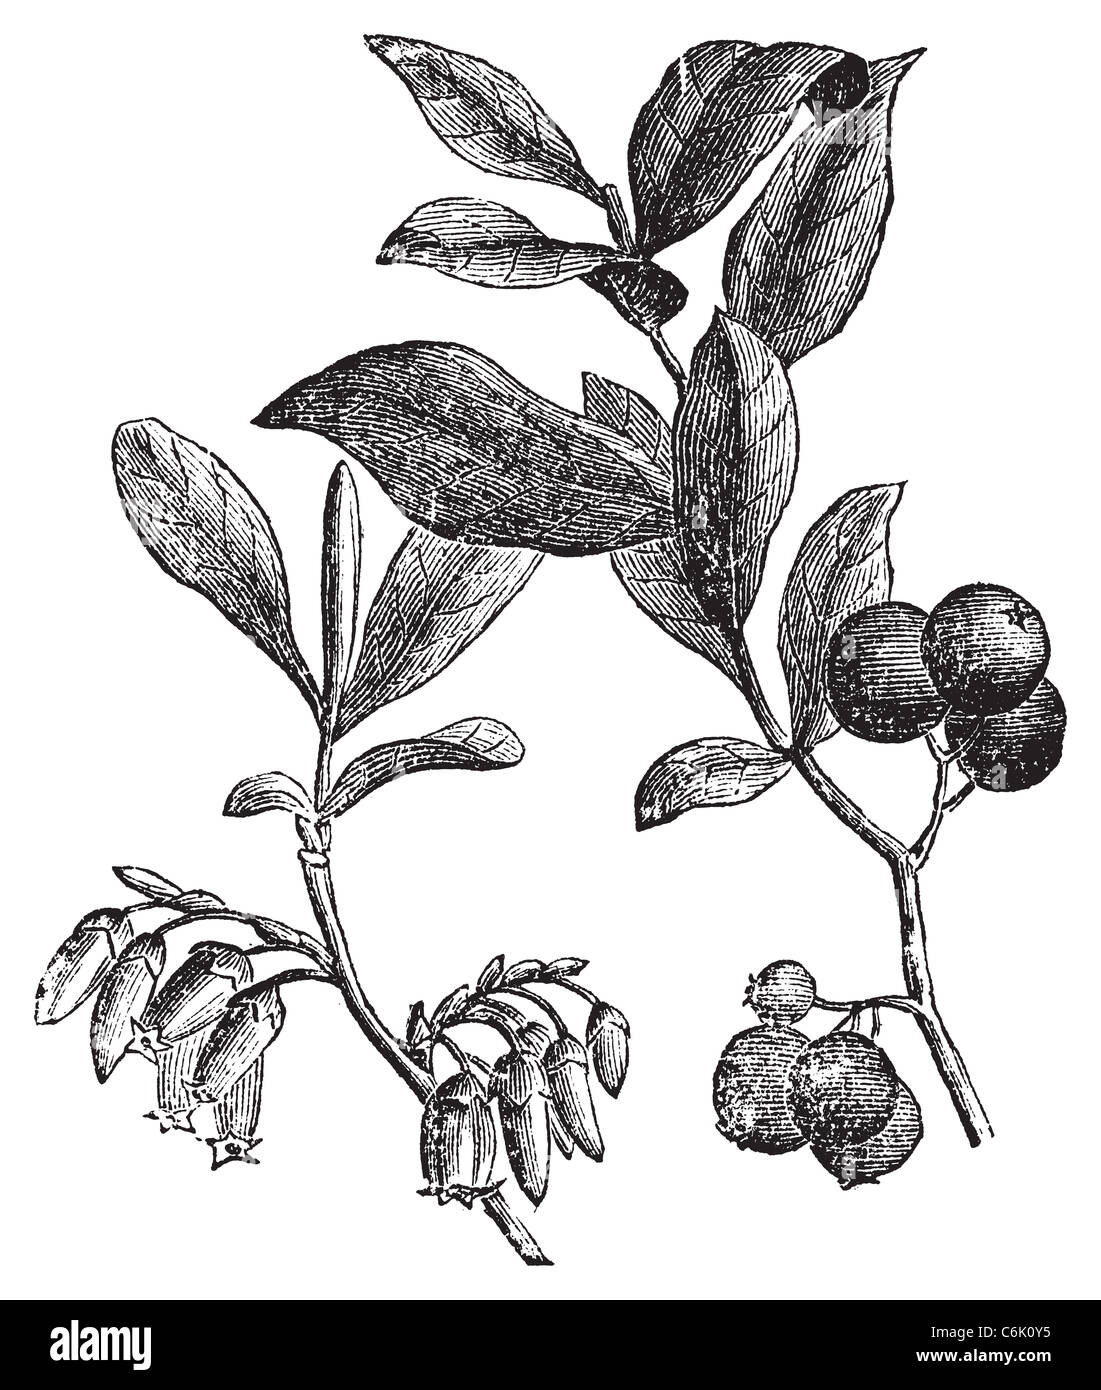 Huckleberry. Old vintage engraved illustration of huckleberry plant. The huckleberry is the state fruit of Idaho. - Stock Image